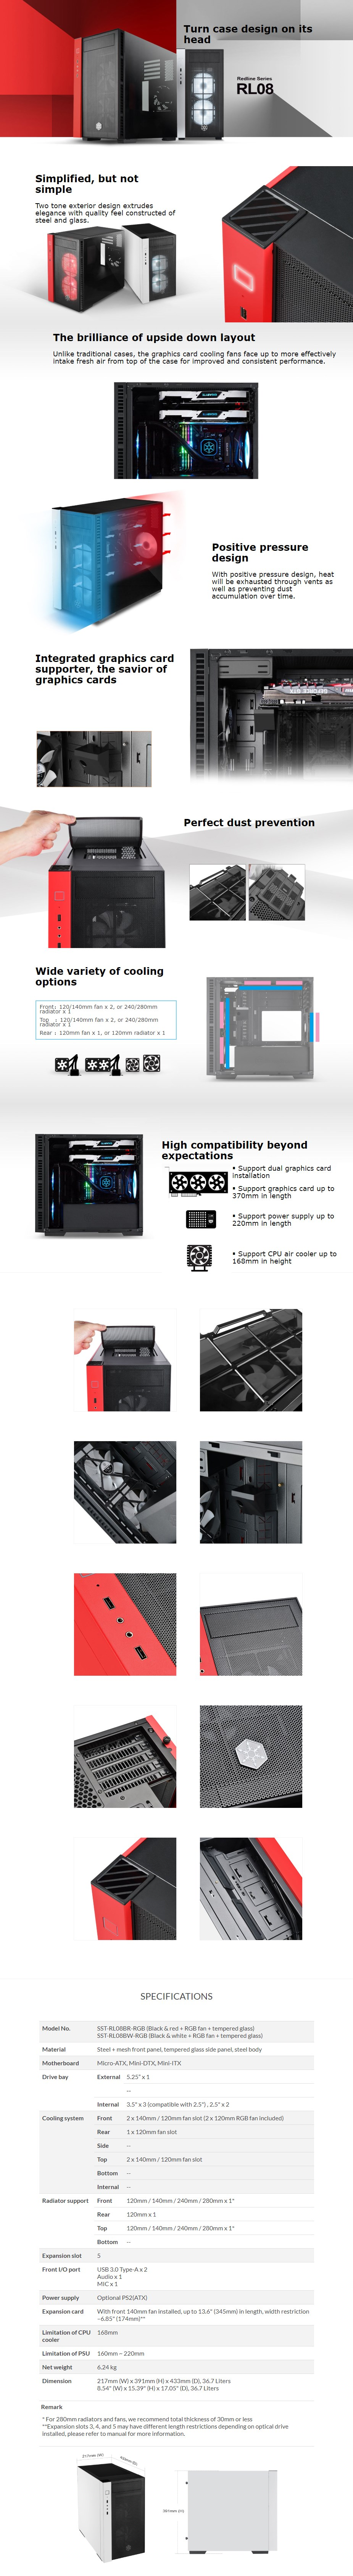 SilverStone RedLine RL08 Micro-ATX Tempered Glass RGB Case - Black and White - Overview 1